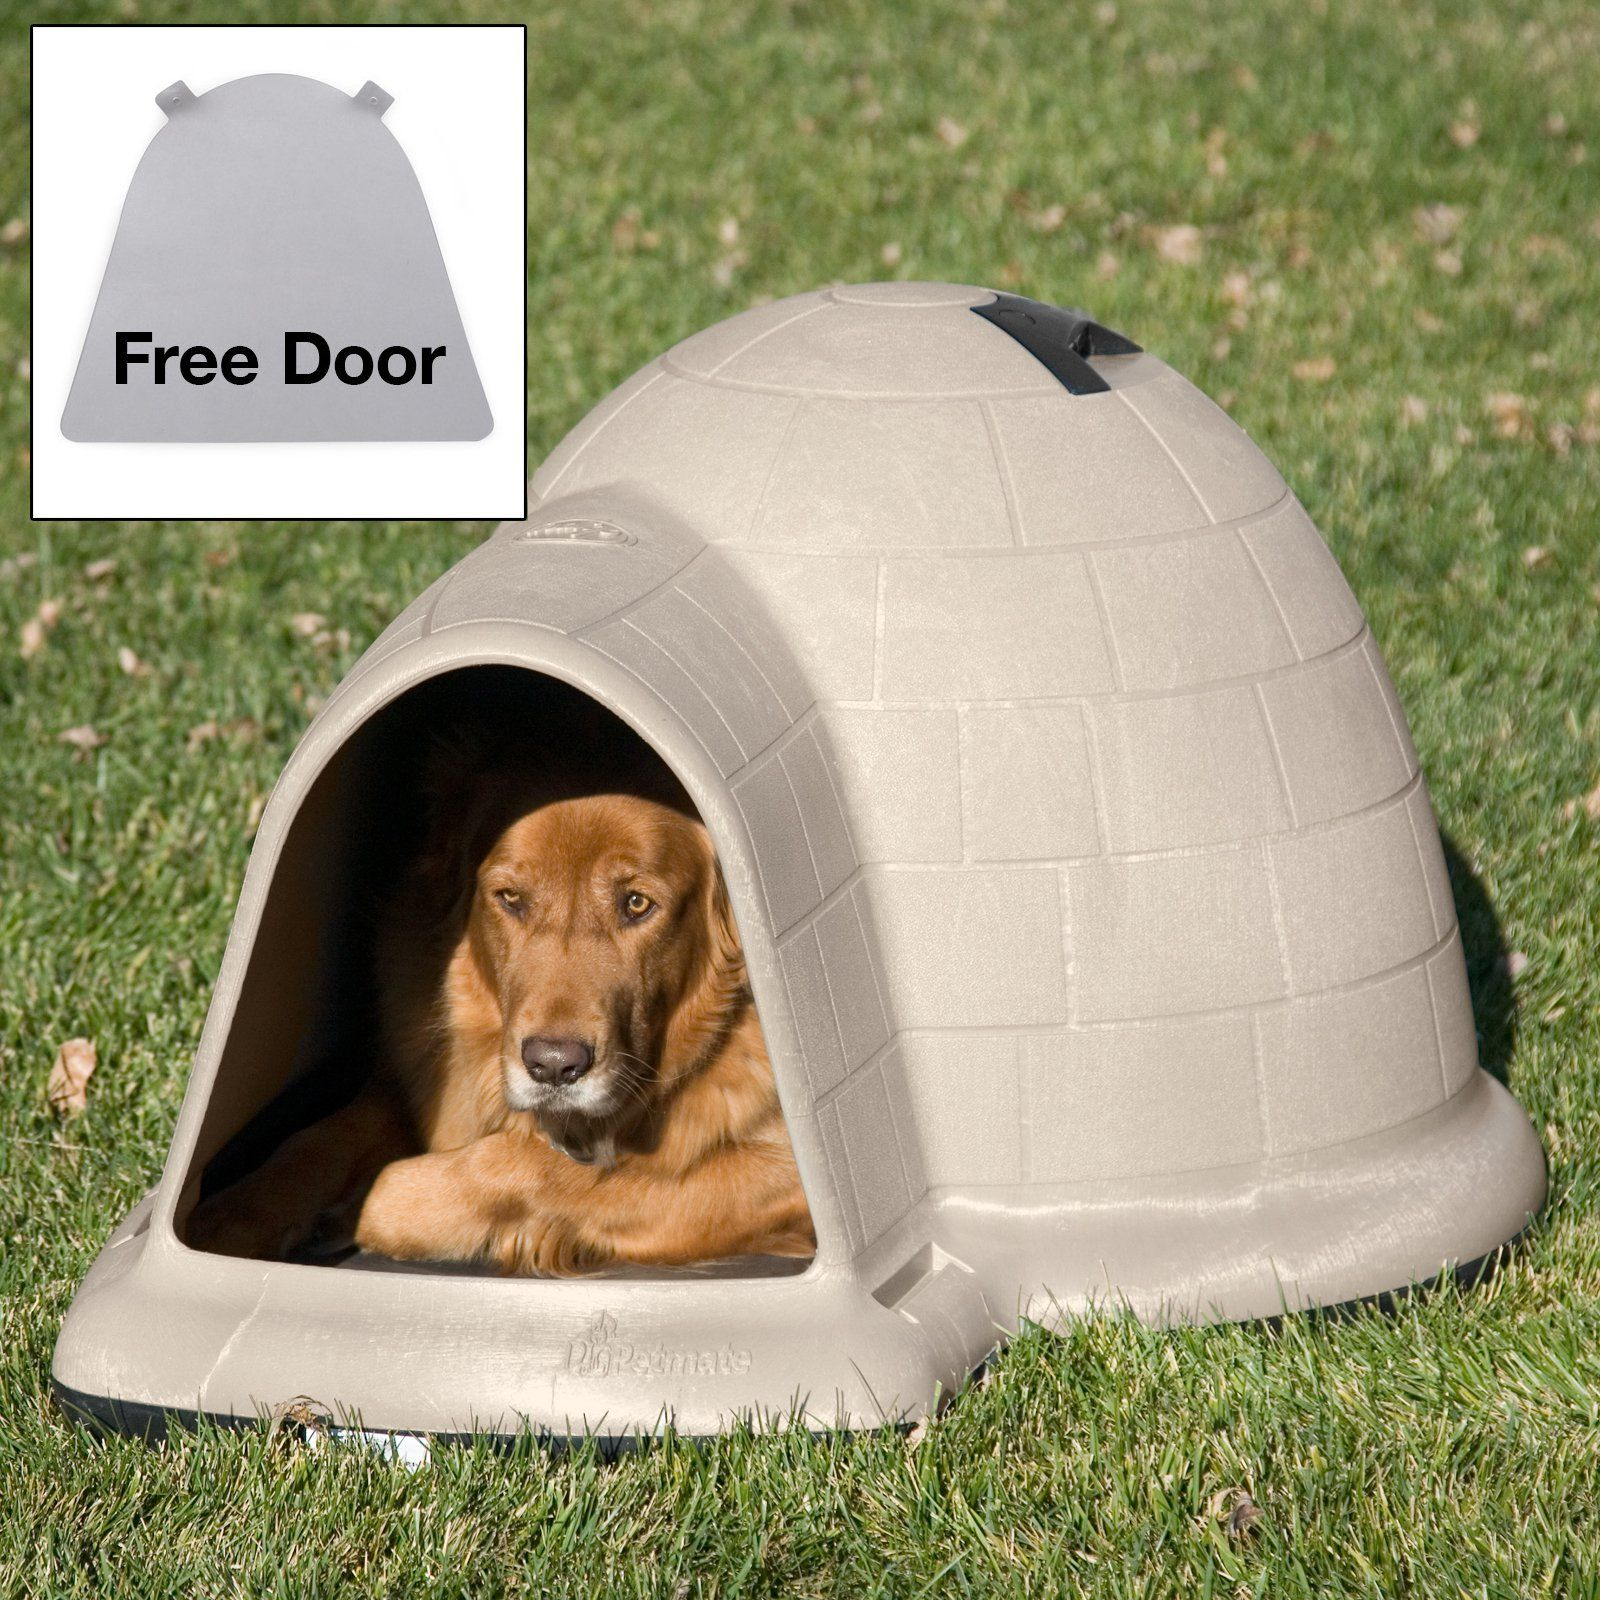 Petmate Indigo Dog House With Free Dog Door Tan Igloo Dog House